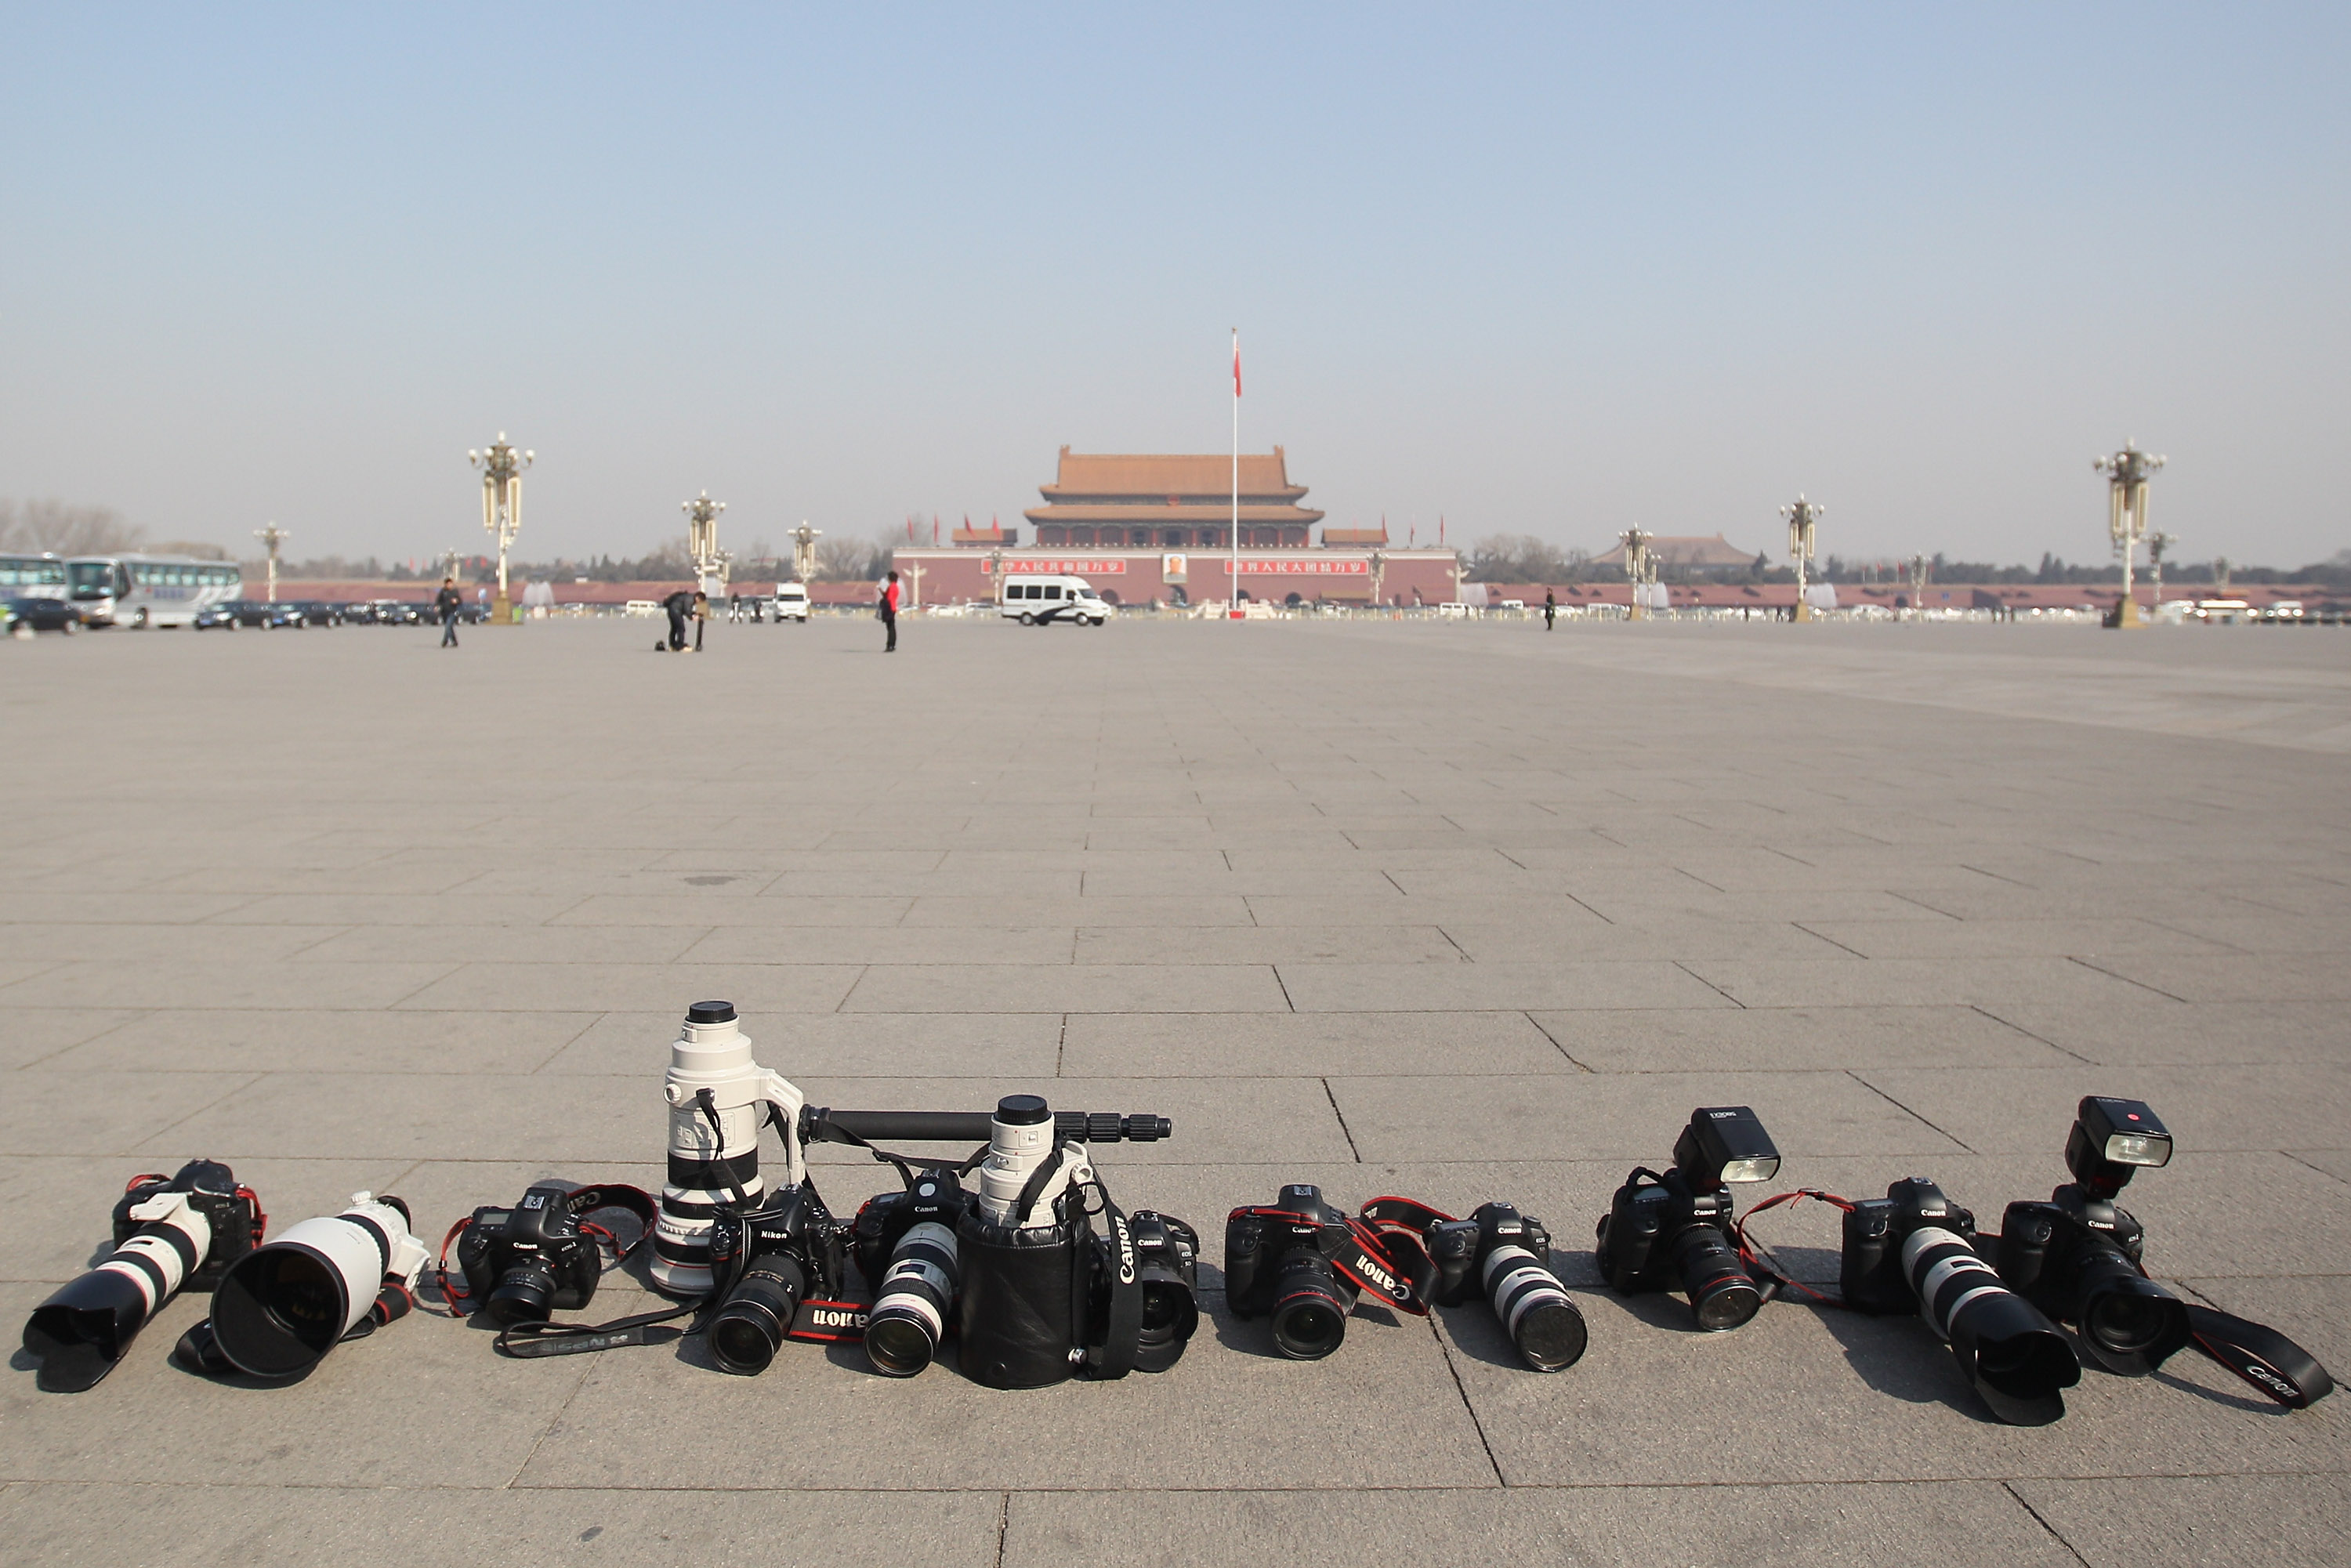 A general view of the photojournalists' cameras and lenses at the Tian'anmen Square after the closing ceremony of the Chinese People's Political Consultative Conference (CPPCC) outside on March 13, 2012 in Beijing, China. (Photo by Feng Li/Getty Images)